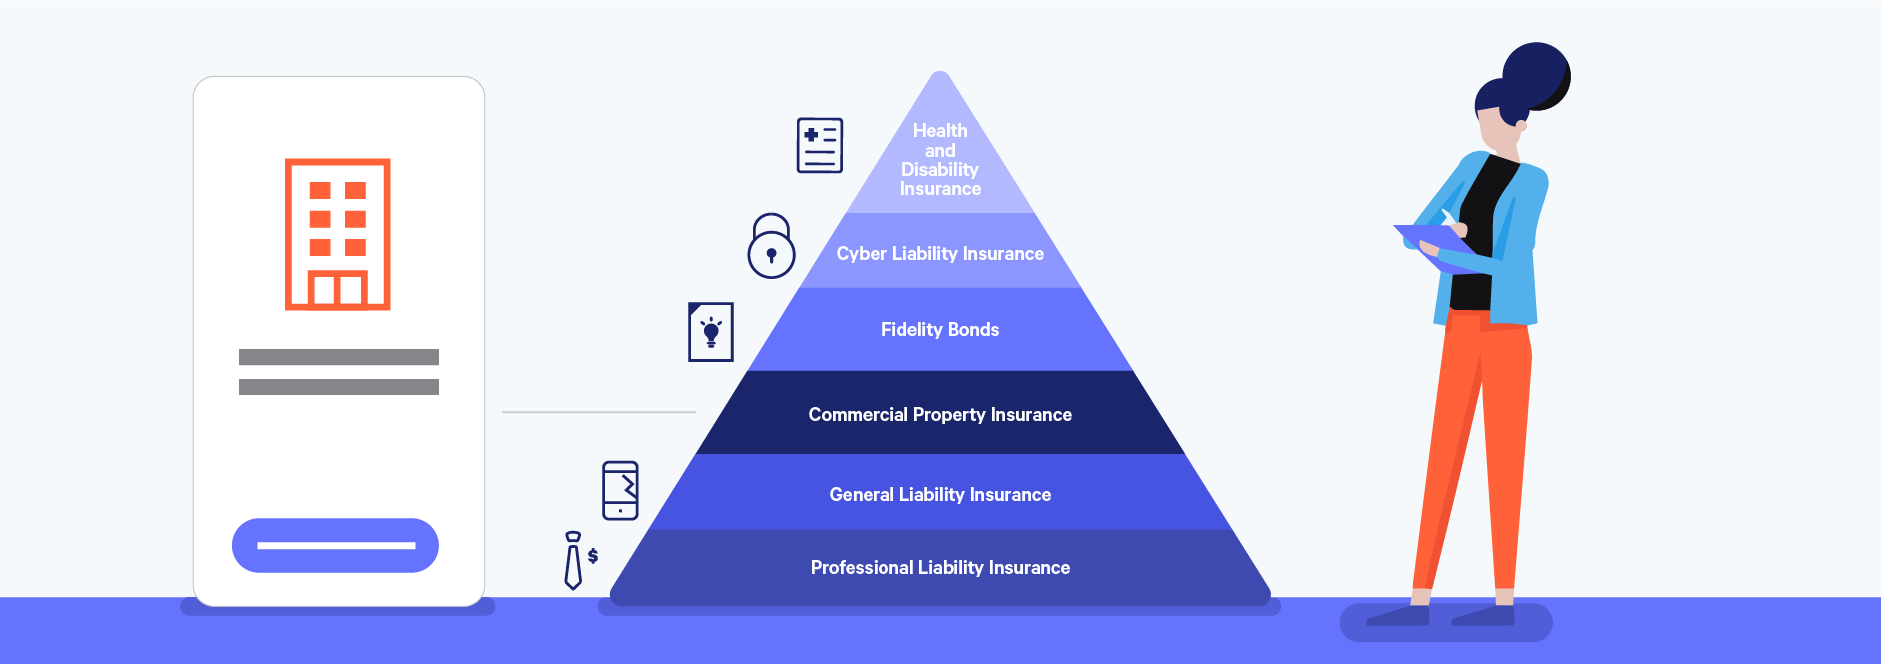 commercial property insurance as a key freelance insurance policy illustration